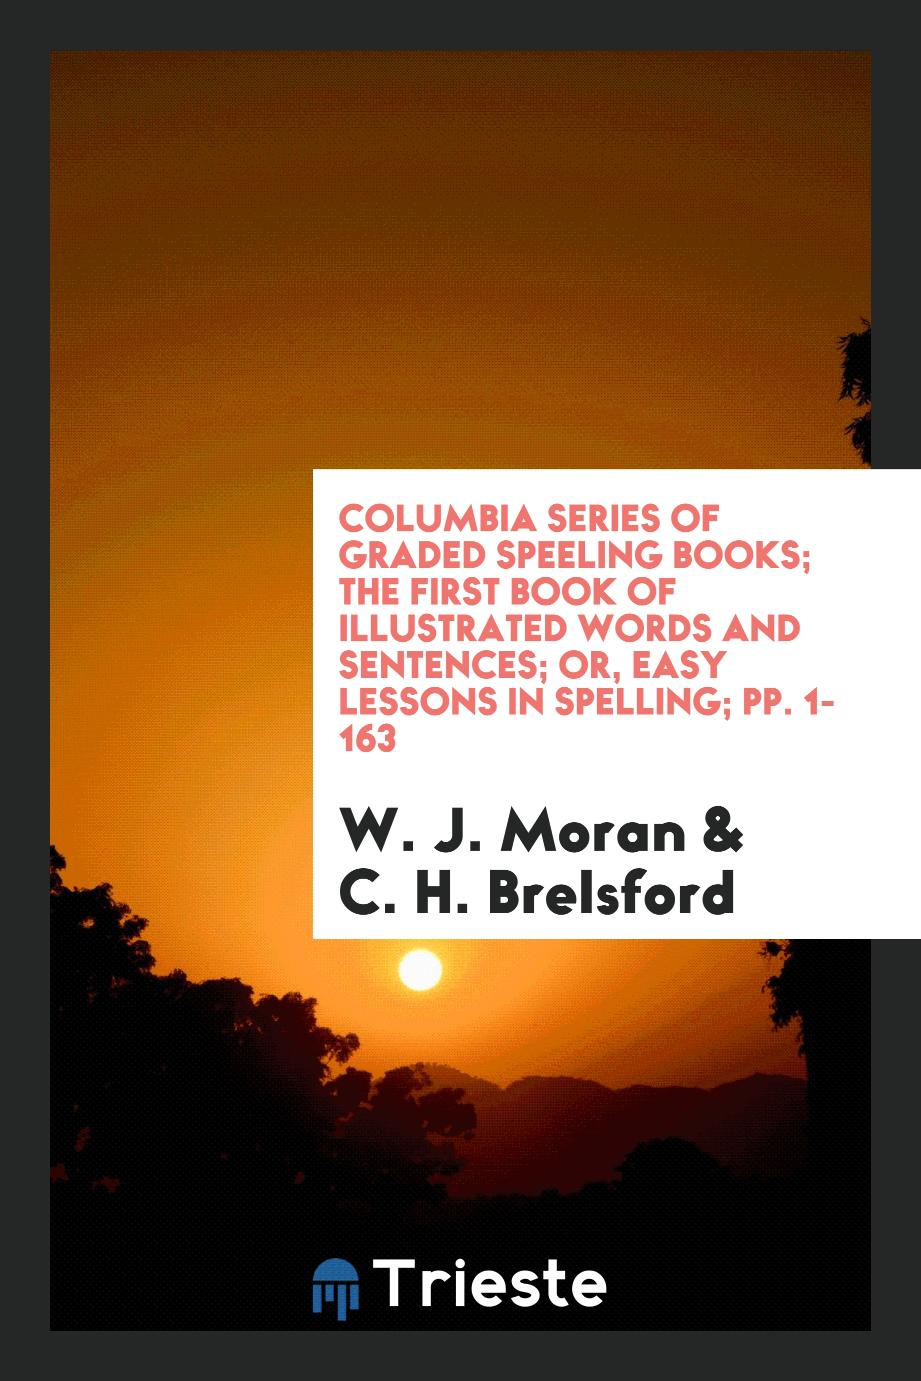 Columbia Series of Graded Speeling Books; The First Book of Illustrated Words and Sentences; Or, Easy Lessons in Spelling; pp. 1-163